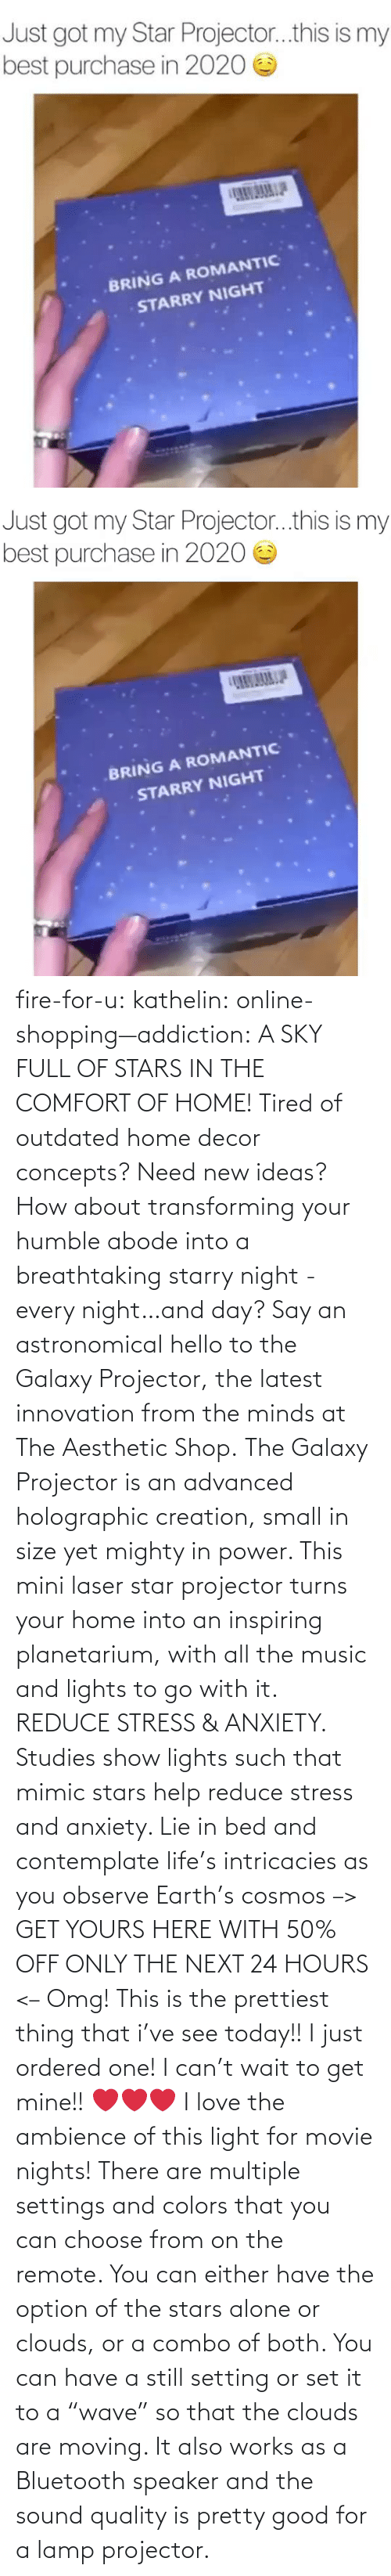 "how about: fire-for-u:  kathelin: online-shopping—addiction:  A SKY FULL OF STARS IN THE COMFORT OF HOME! Tired of outdated home decor concepts? Need new ideas? How about transforming your humble abode into a breathtaking starry night - every night…and day? Say an astronomical hello to the Galaxy Projector, the latest innovation from the minds at The Aesthetic Shop. The Galaxy Projector is an advanced holographic creation, small in size yet mighty in power. This mini laser star projector turns your home into an inspiring planetarium, with all the music and lights to go with it. REDUCE STRESS & ANXIETY. Studies show lights such that mimic stars help reduce stress and anxiety. Lie in bed and contemplate life's intricacies as you observe Earth's cosmos  –> GET YOURS HERE WITH 50% OFF ONLY THE NEXT 24 HOURS <–   Omg! This is the prettiest thing that i've see today!! I just ordered one! I can't wait to get mine!! ❤️️❤️️❤️️  I love the ambience of this light for movie nights! There are multiple settings and colors that you can choose from on the remote. You can either have the option of the stars alone or clouds, or a combo of both. You can have a still setting or set it to a ""wave"" so that the clouds are moving. It also works as a Bluetooth speaker and the sound quality is pretty good for a lamp projector."